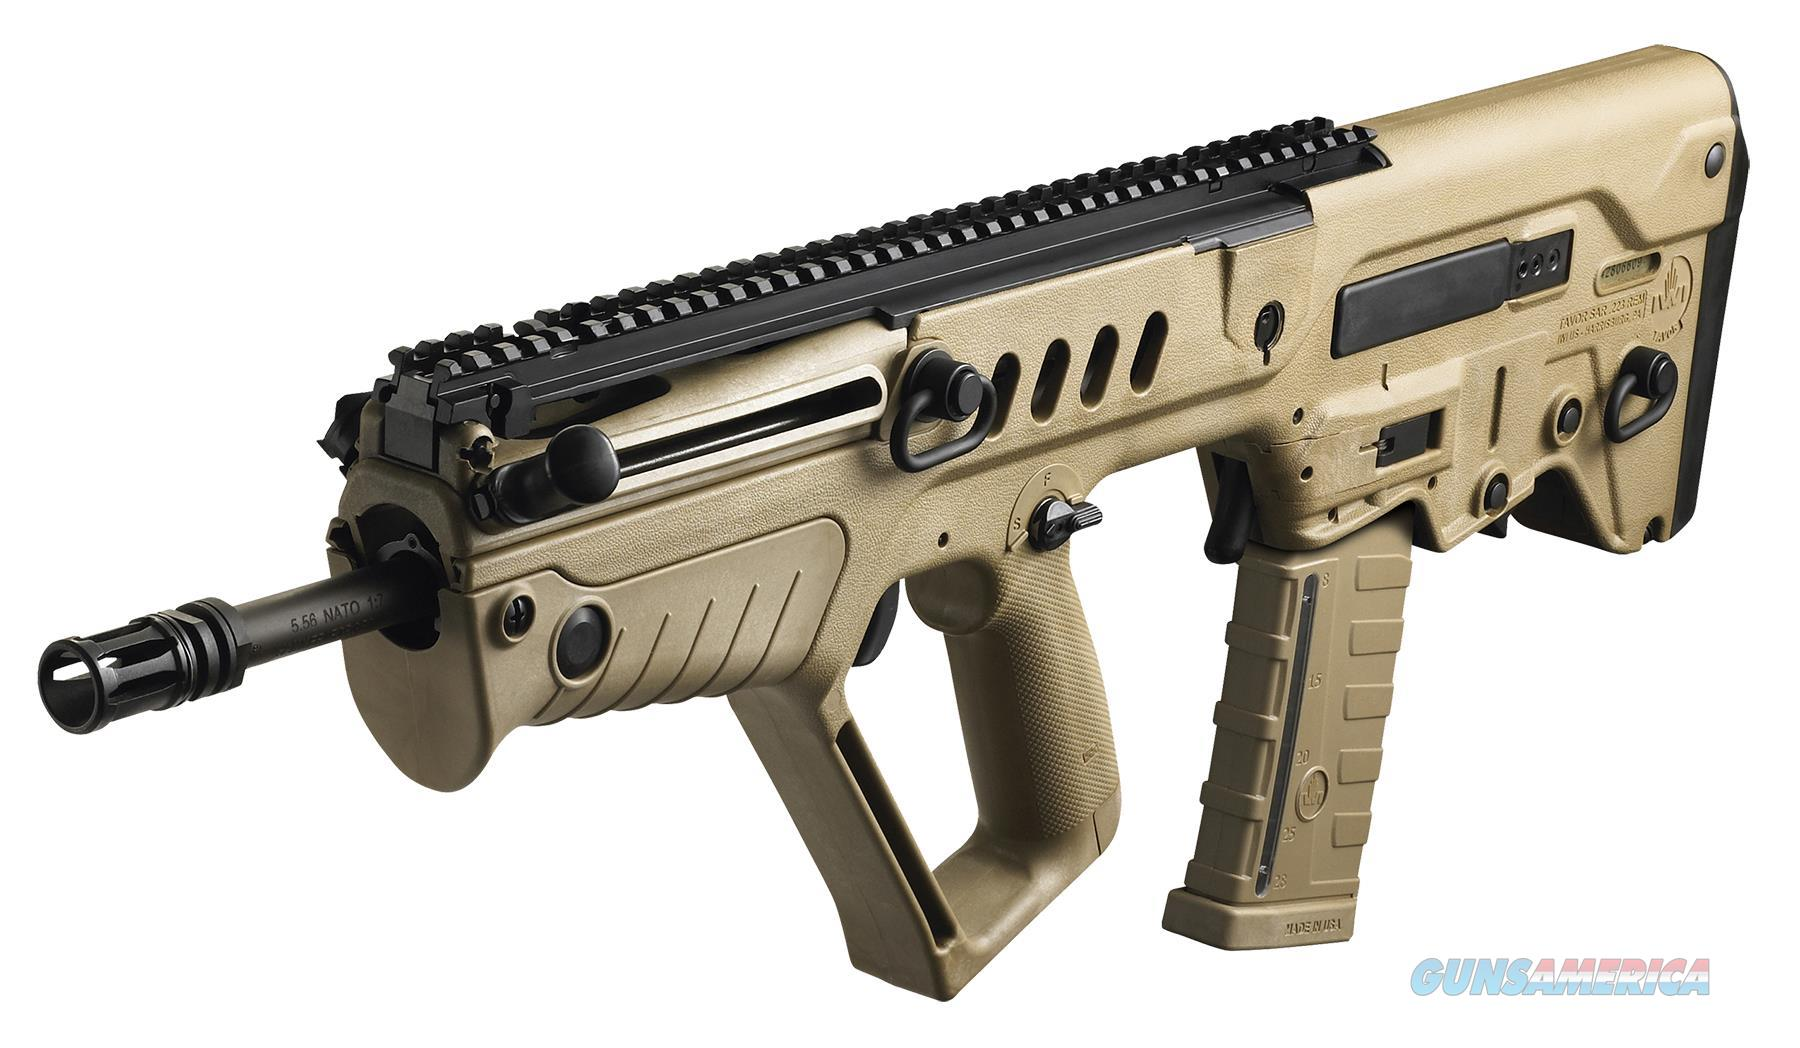 "Iwi Us Tsdf16 Tavor Sar Semi-Automatic 223 Remington/5.56 Nato 16.5"" 30+1 Polymer Flat Dark Earth Stk Flat Dark Earth TSFD16  Guns > Rifles > IJ Misc Rifles"